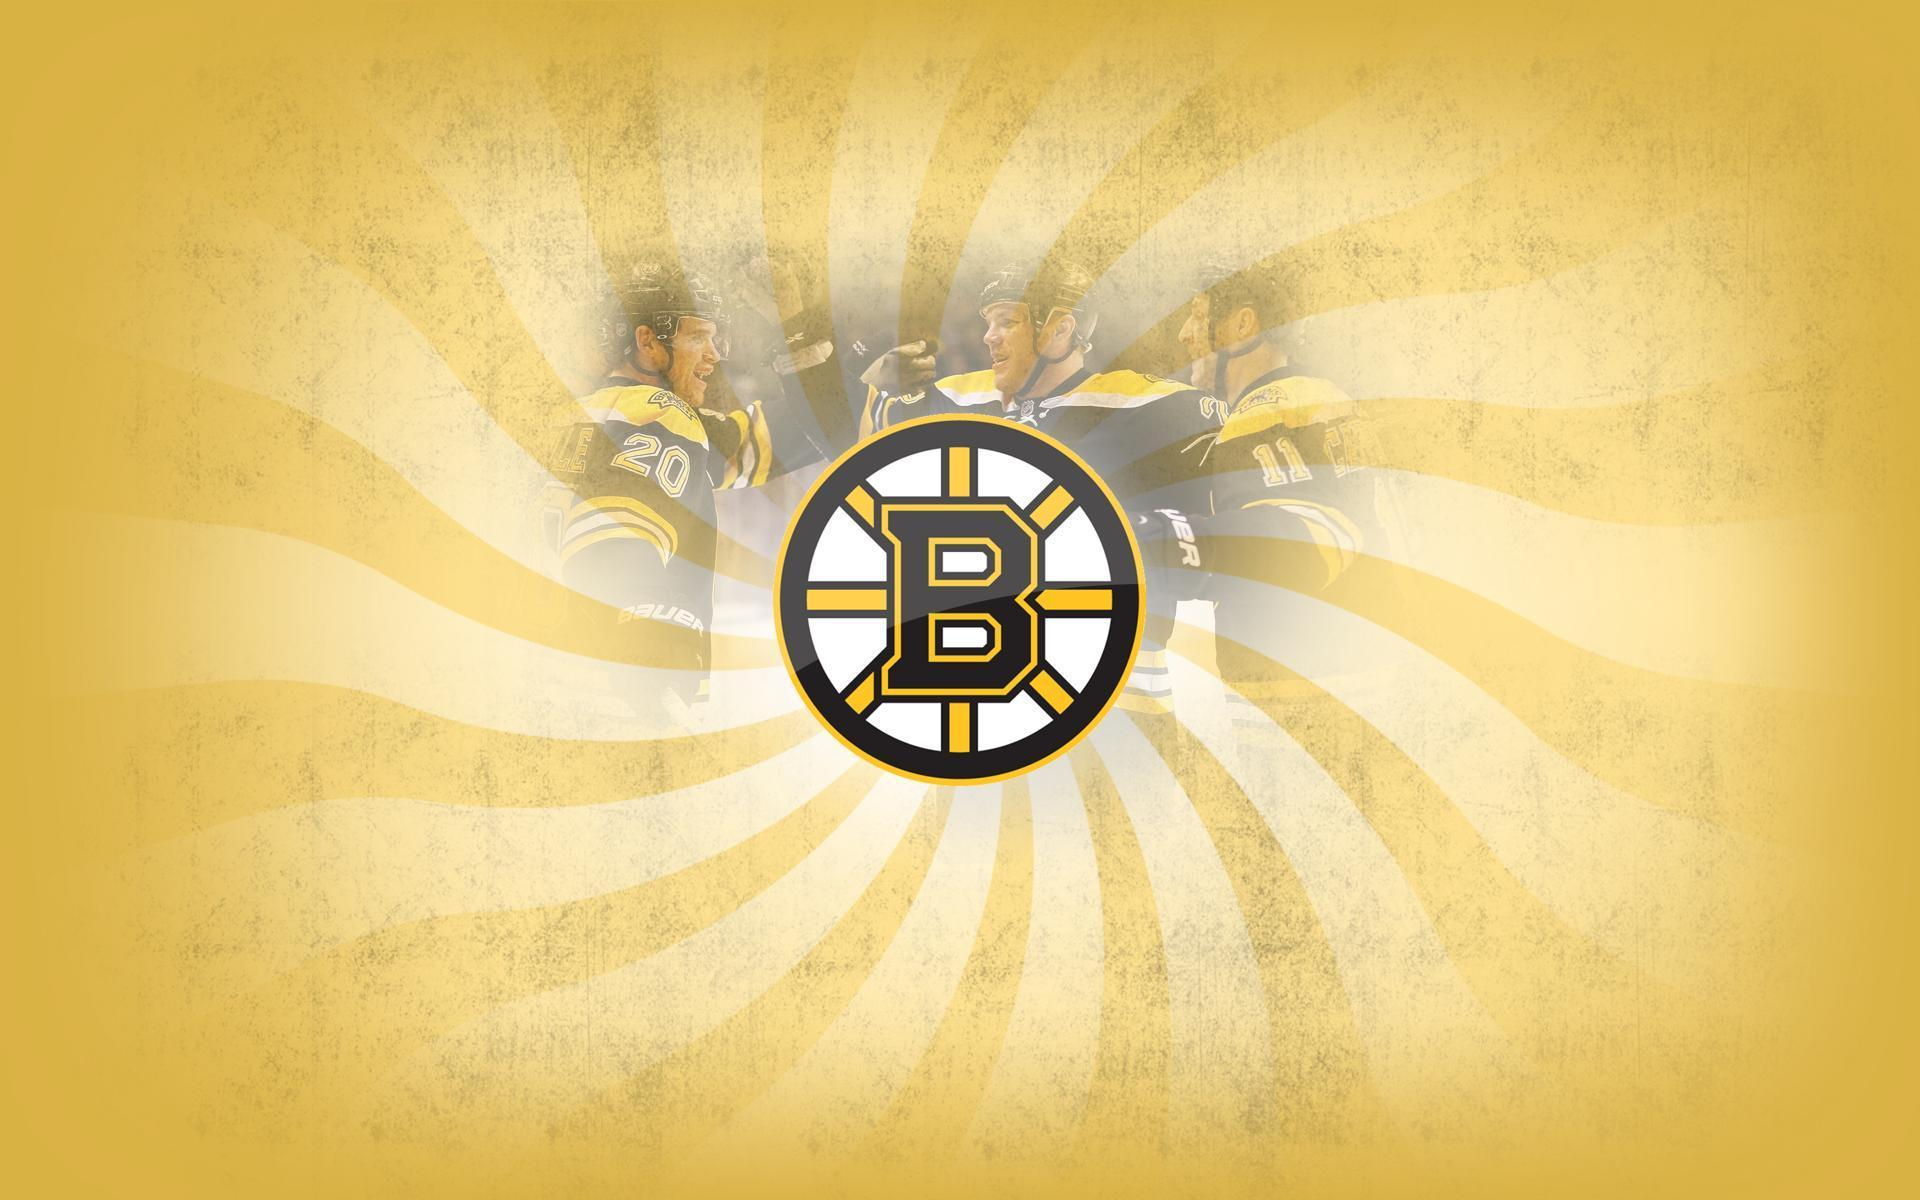 Boston Bruins Wallpaper #1 by TheYuhau on DeviantArt